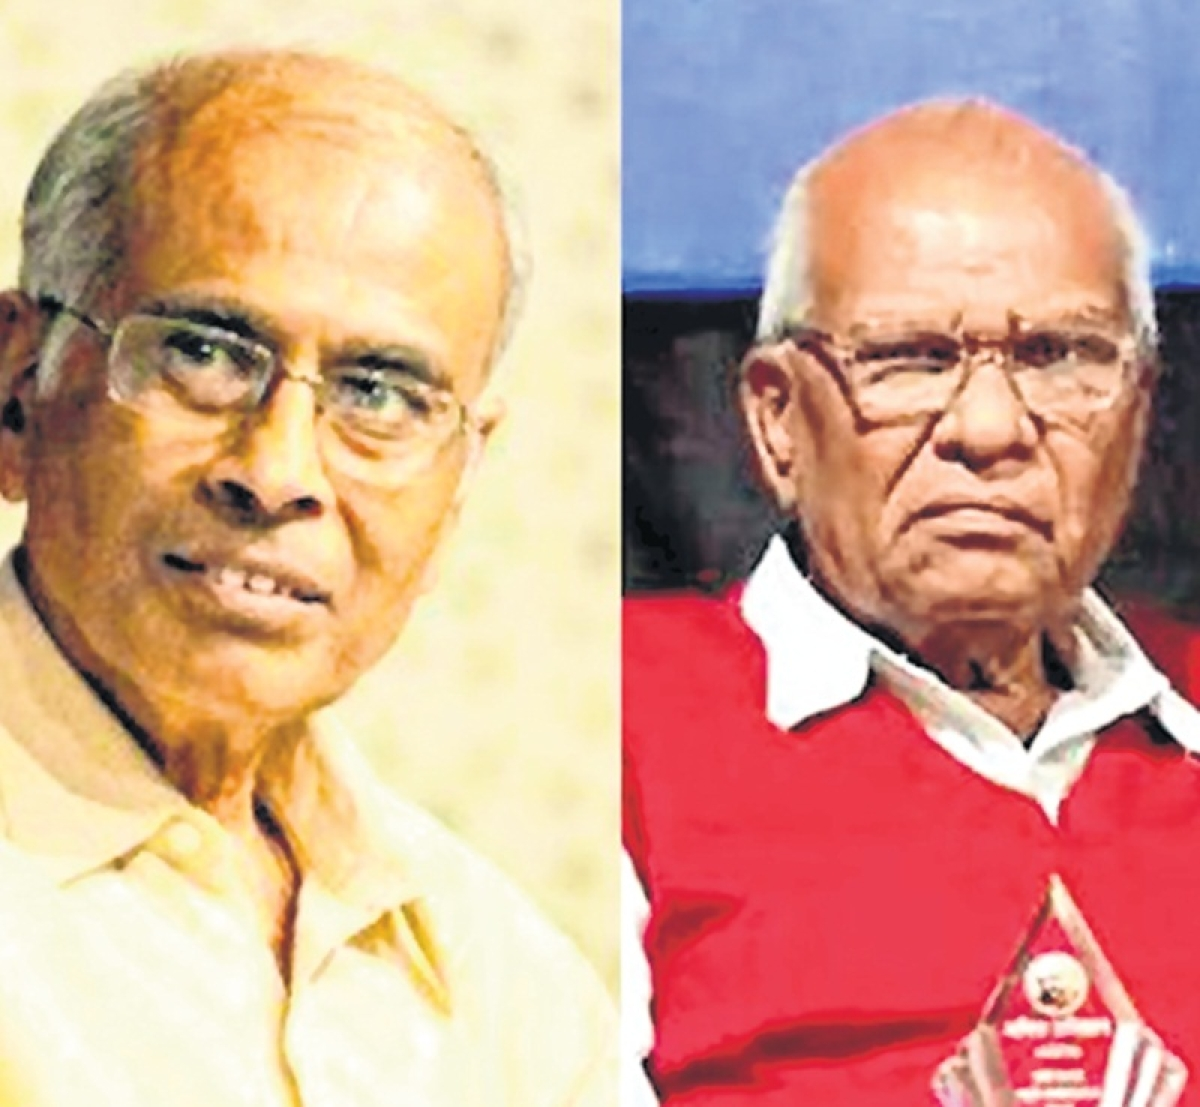 No one can silence a dissenting voice or opinion, observes Bombay High Court